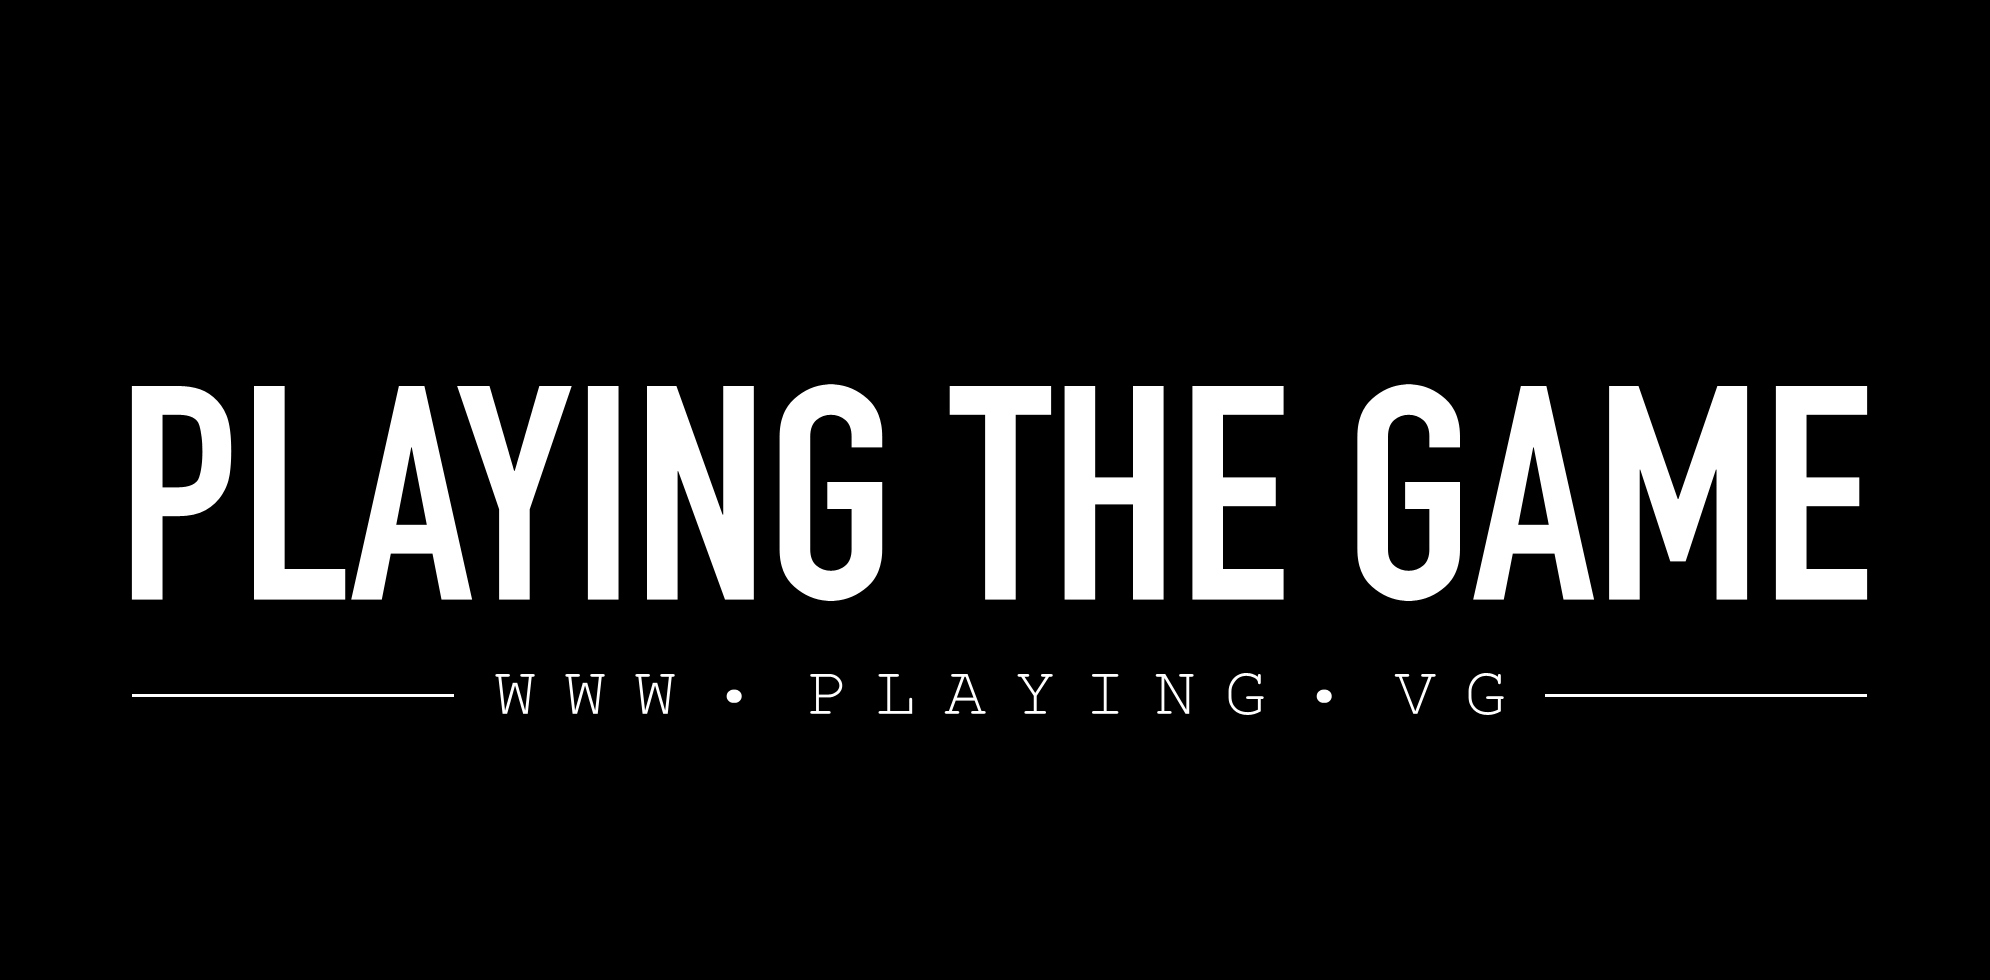 PlayingTheGame-logo-white